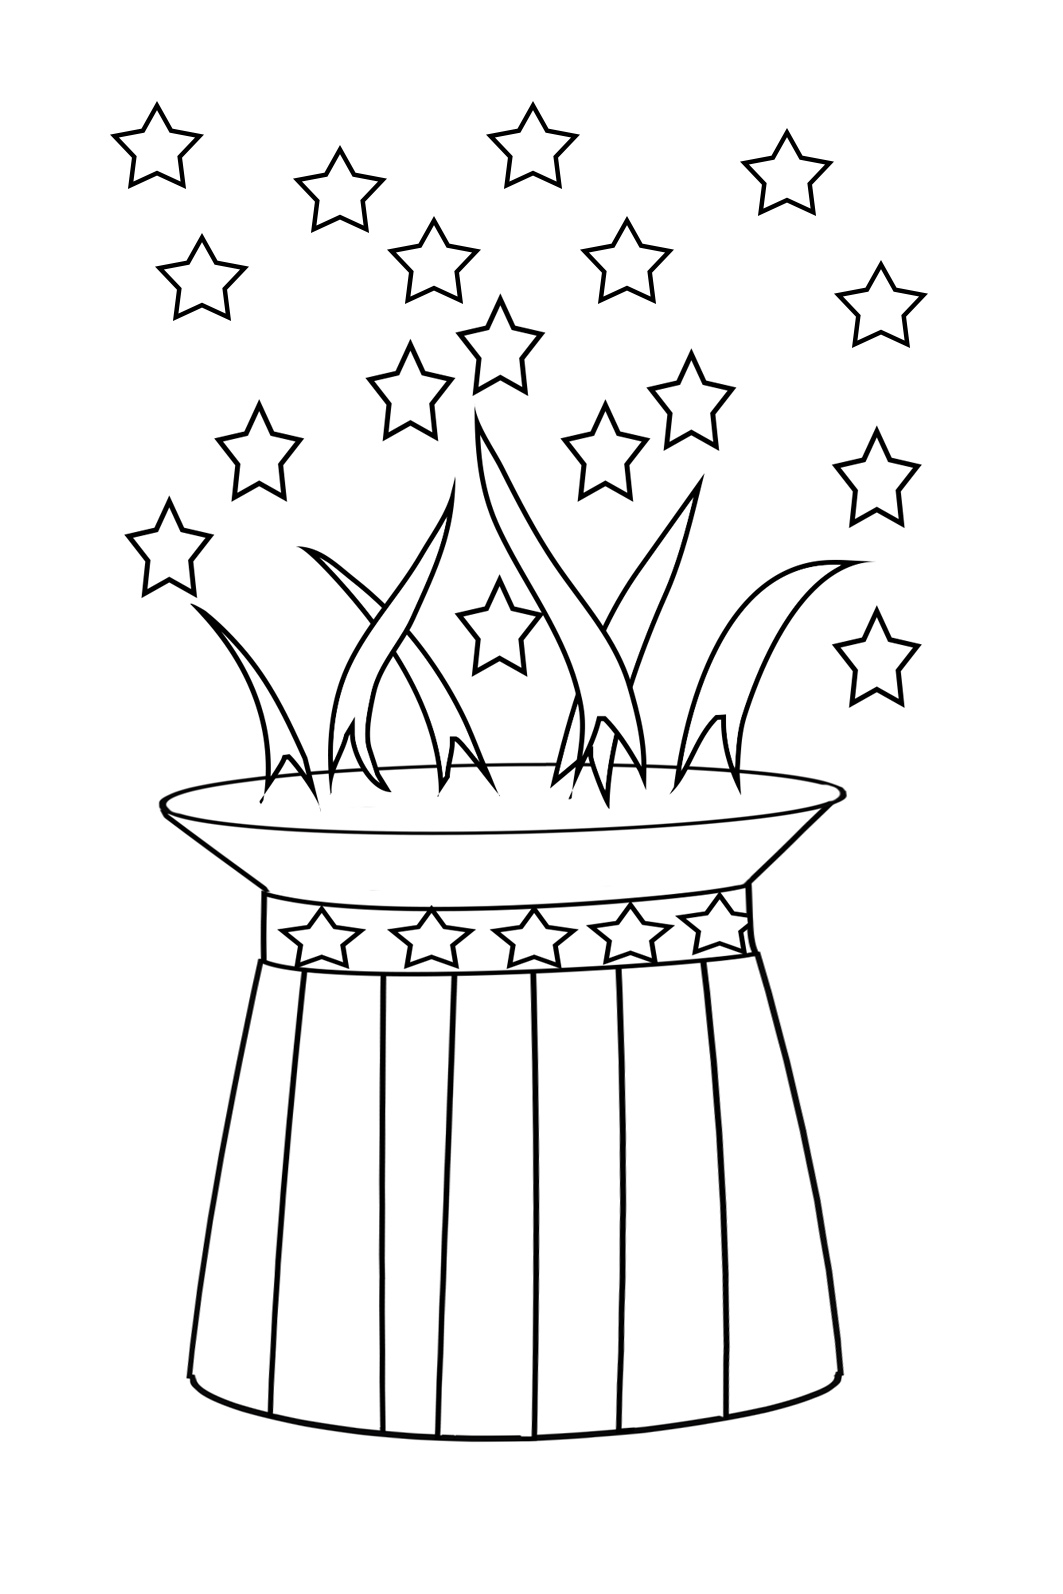 coloring pictures 4th of july 4th of july coloring pages best coloring pages for kids july pictures coloring of 4th